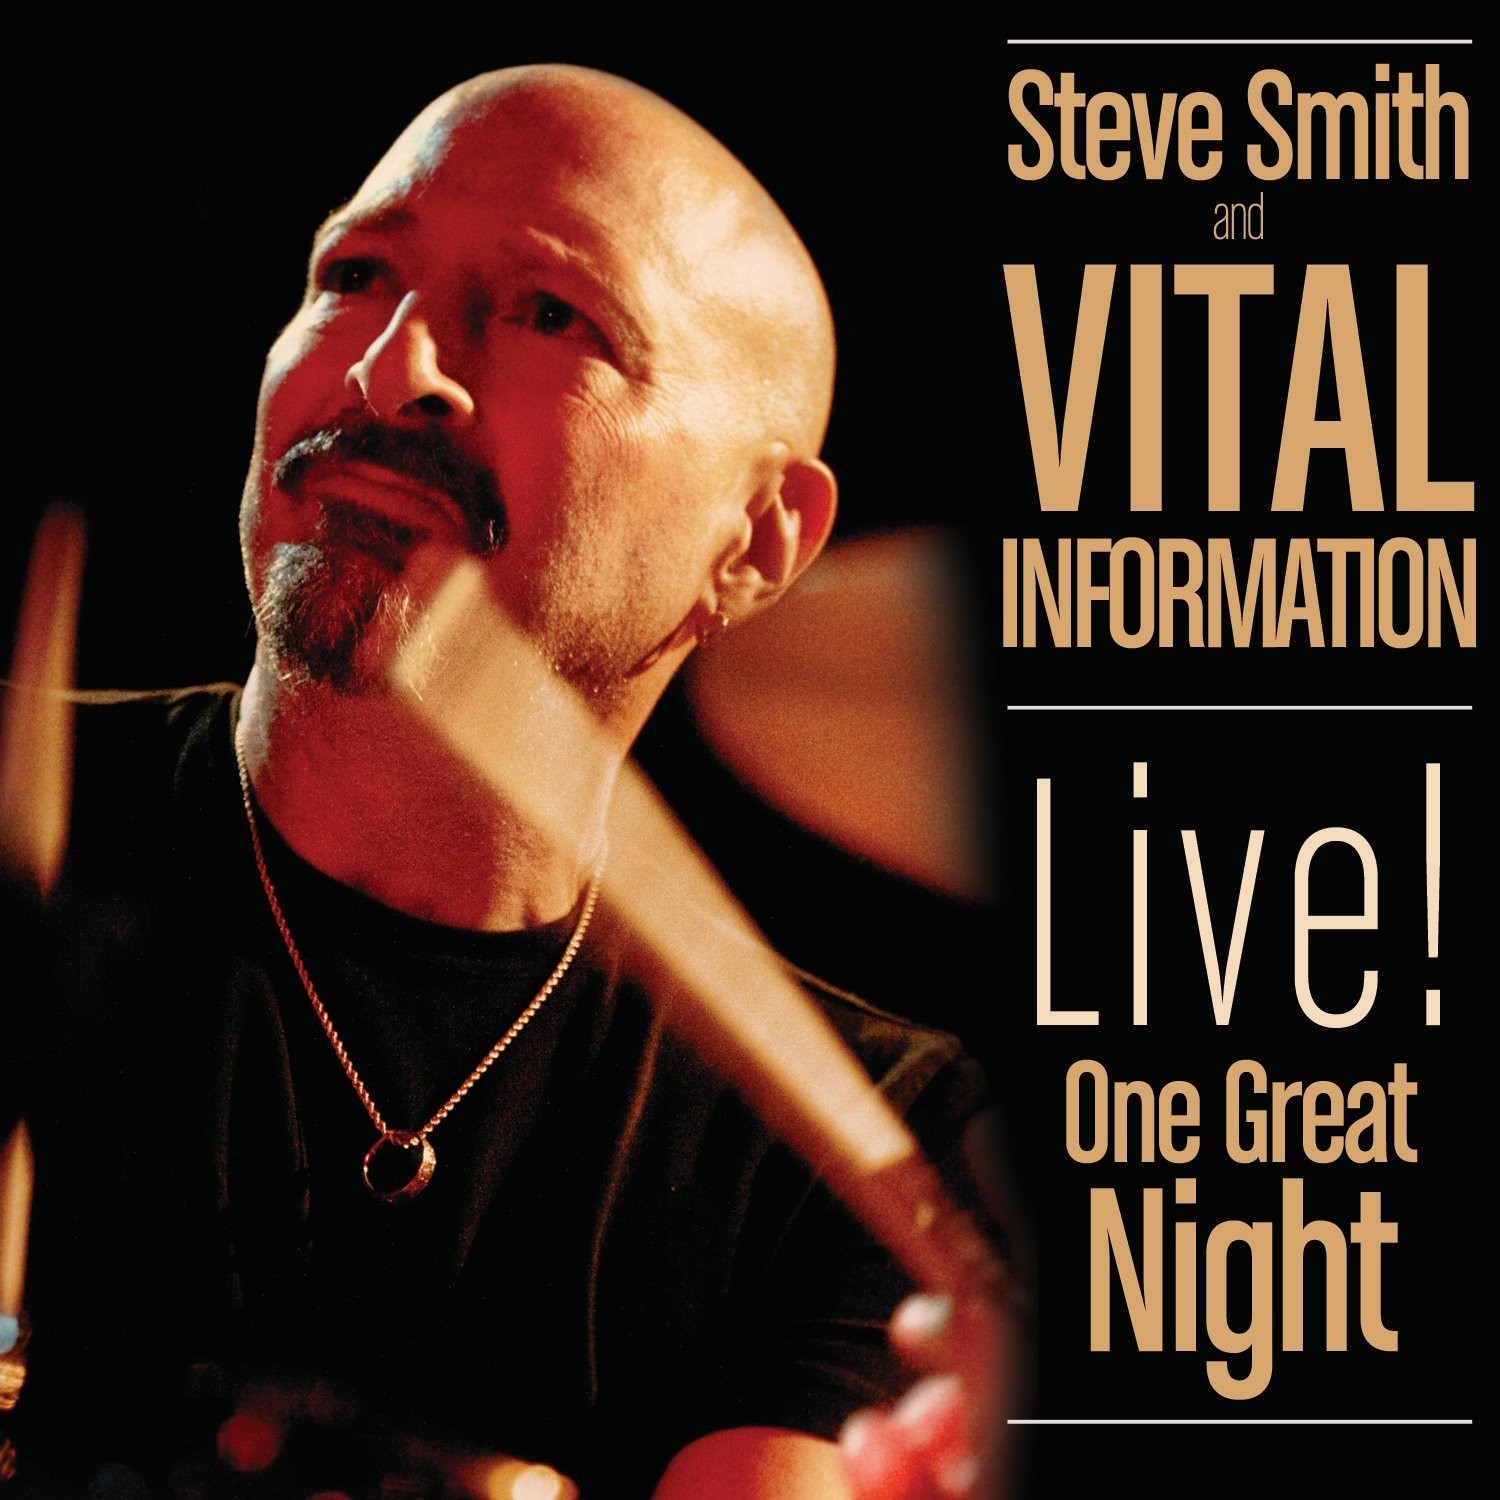 Steve Smith and Vital Information: Live! One Great Night